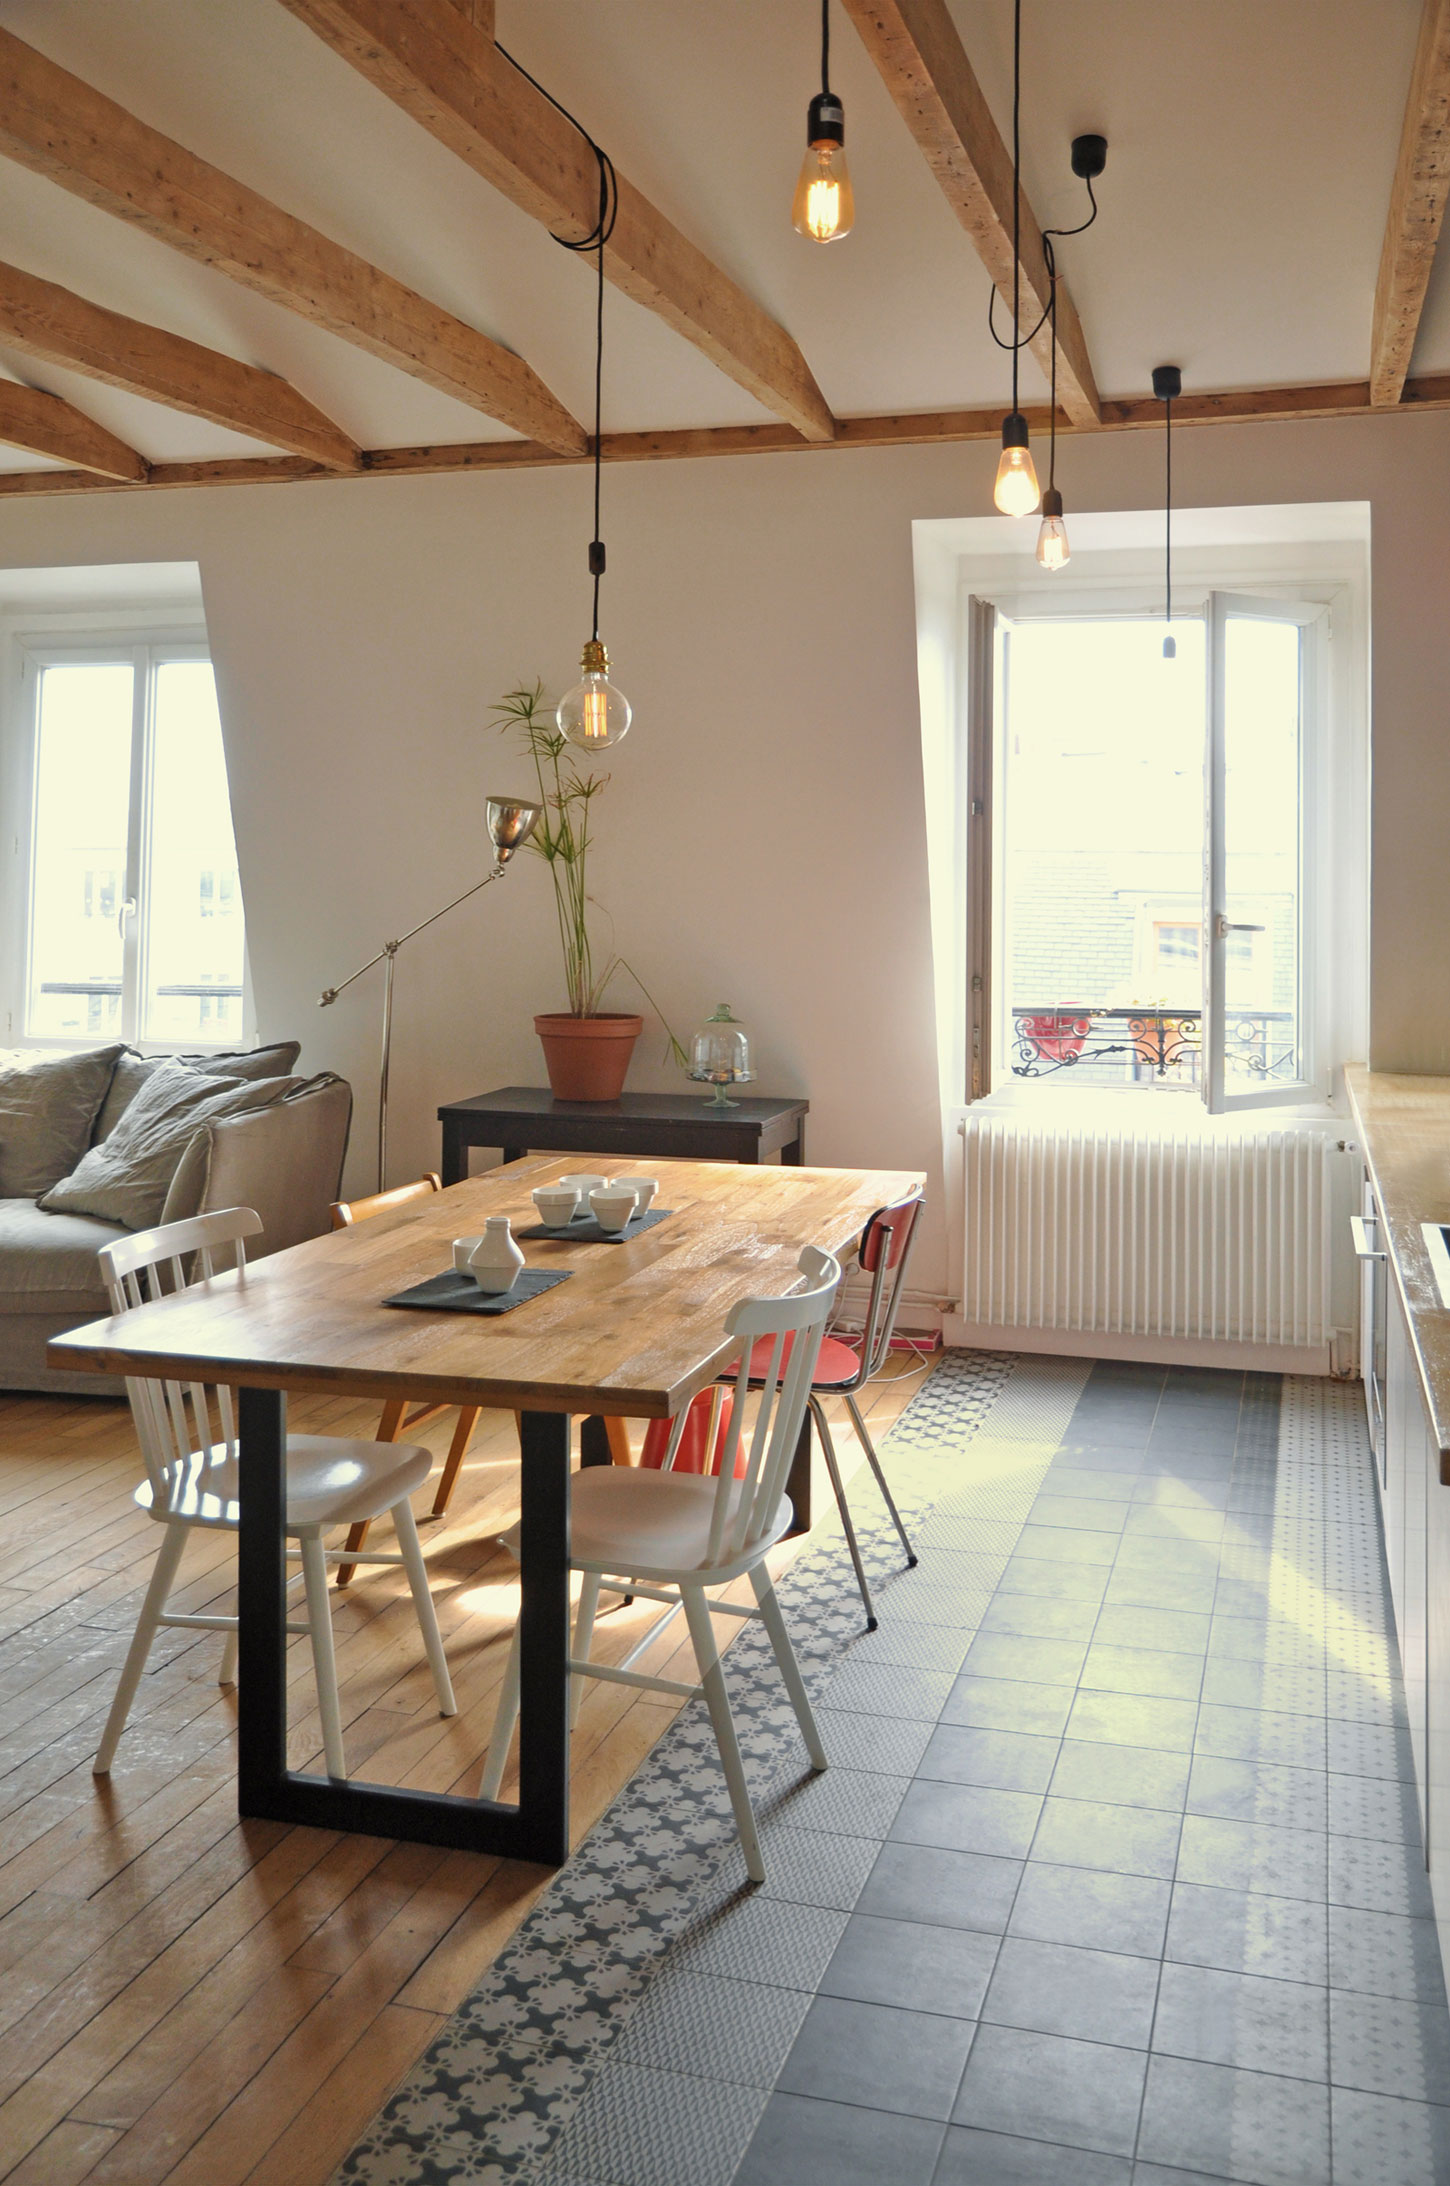 Renovation-of-an-Apartment-in-Paris-dining-table